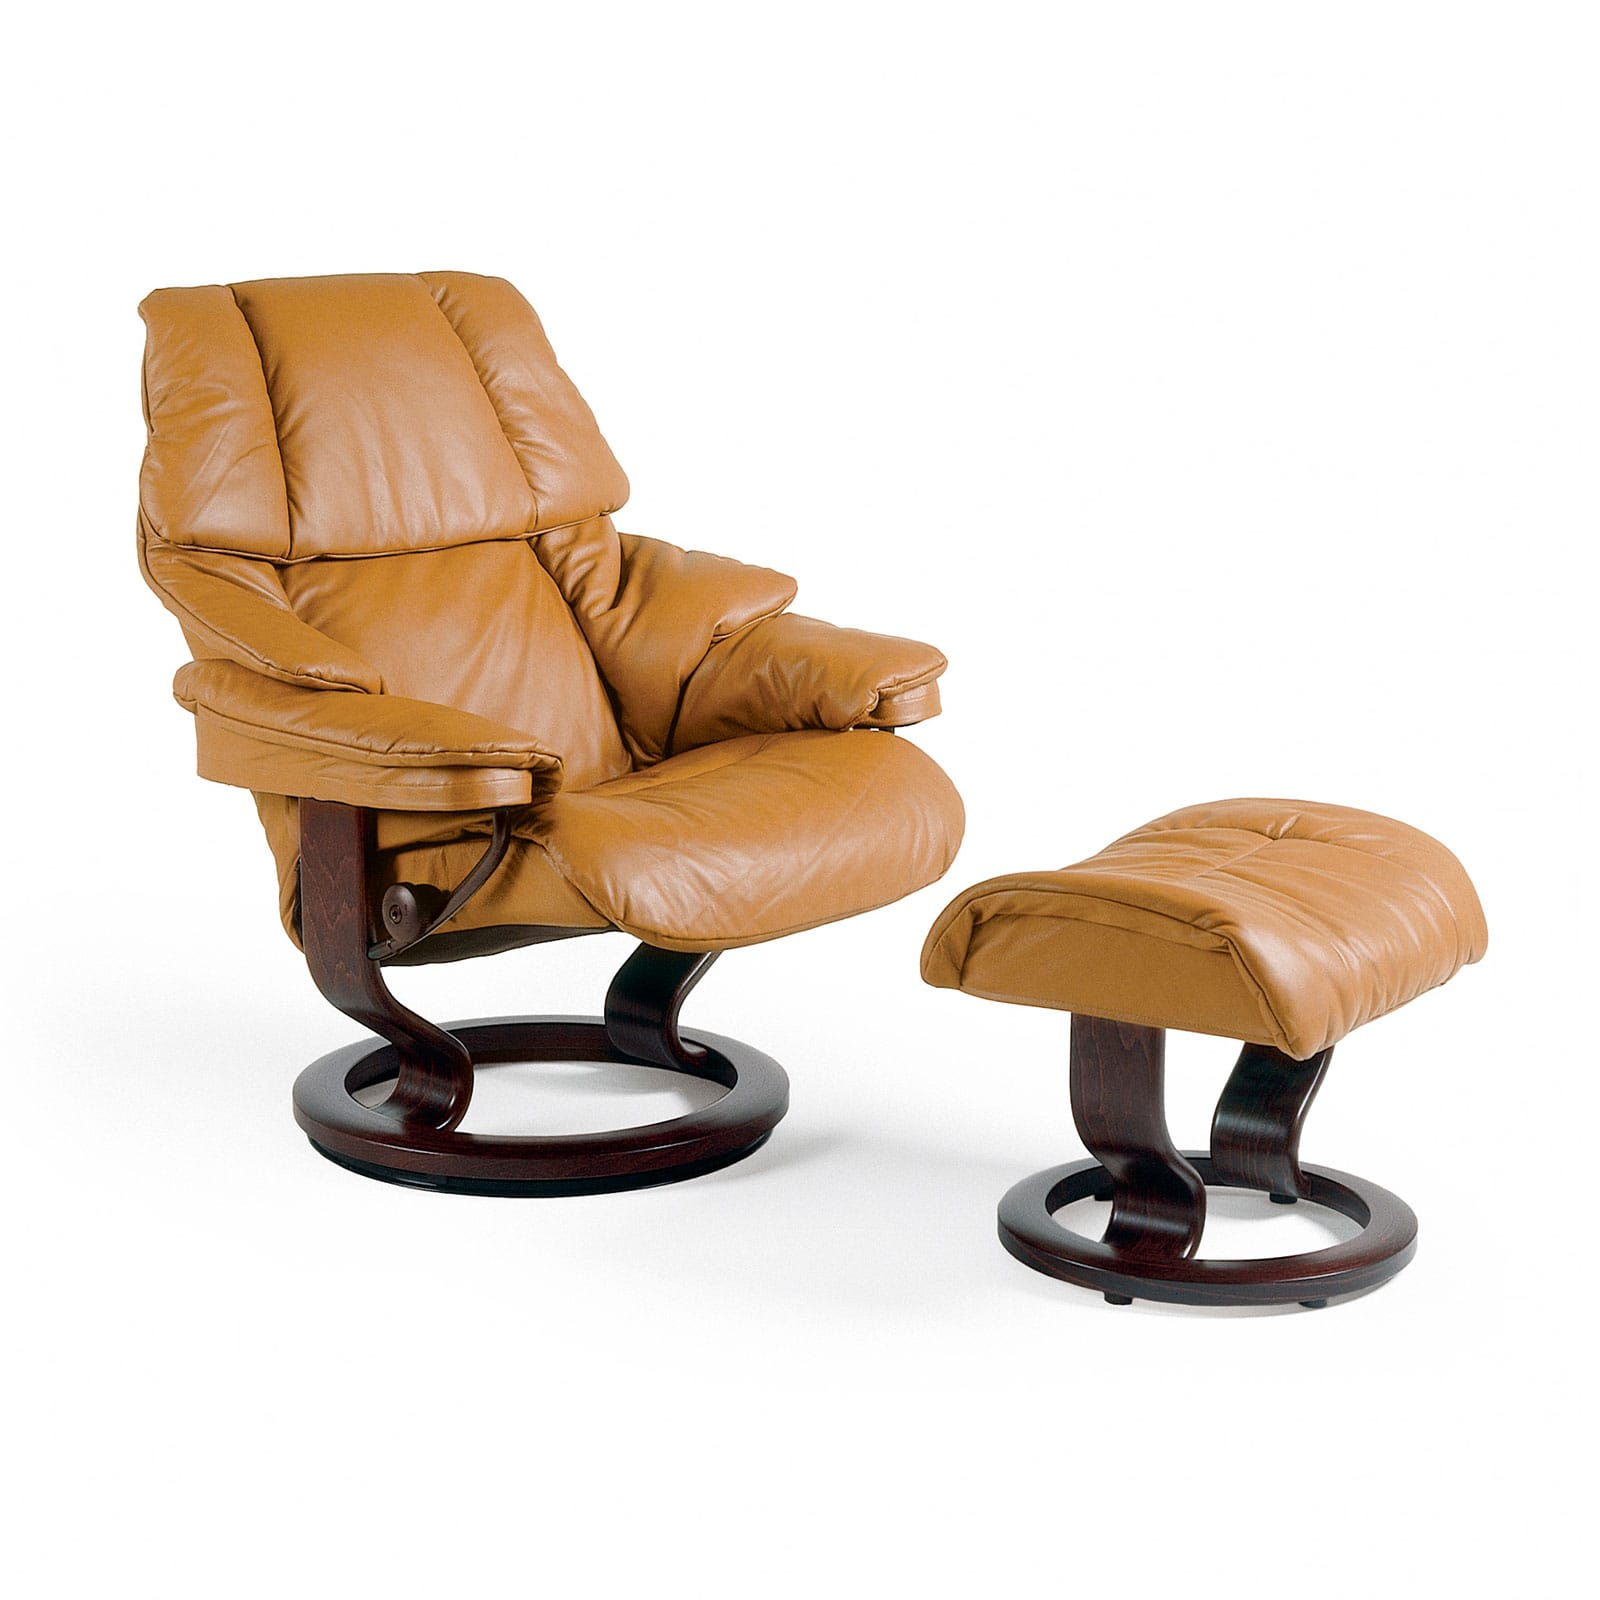 Stressless Sessel Reno Leder Cori Tan Mit Hocker Stressless